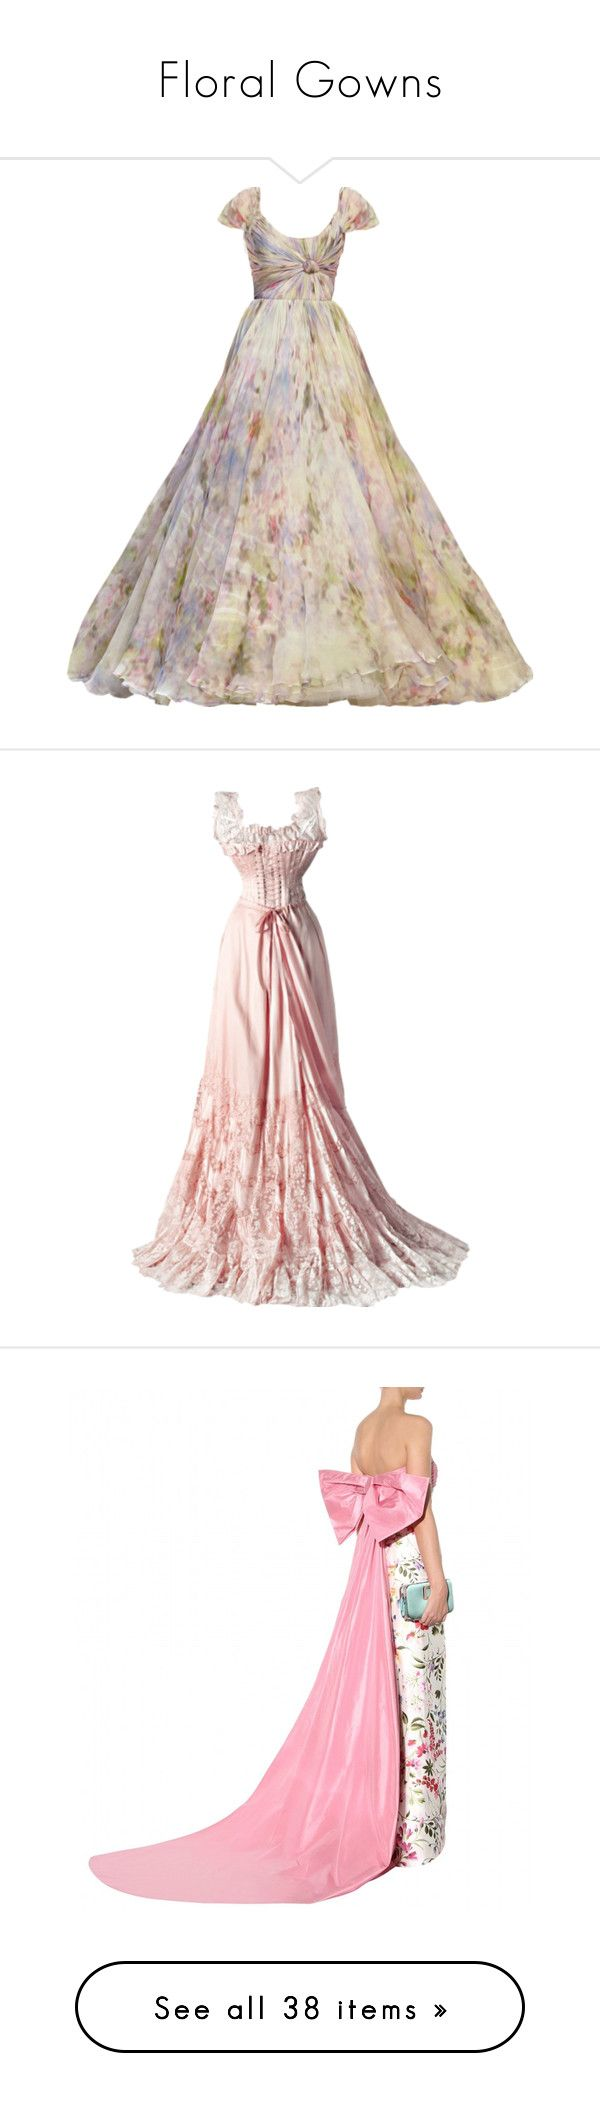 """""""Floral Gowns"""" by robynlari ❤ liked on Polyvore featuring dresses, gowns, long dresses, vestidos, elie saab, elie saab evening gowns, elie saab gowns, elie saab evening dresses, long dress and oscar de la renta"""